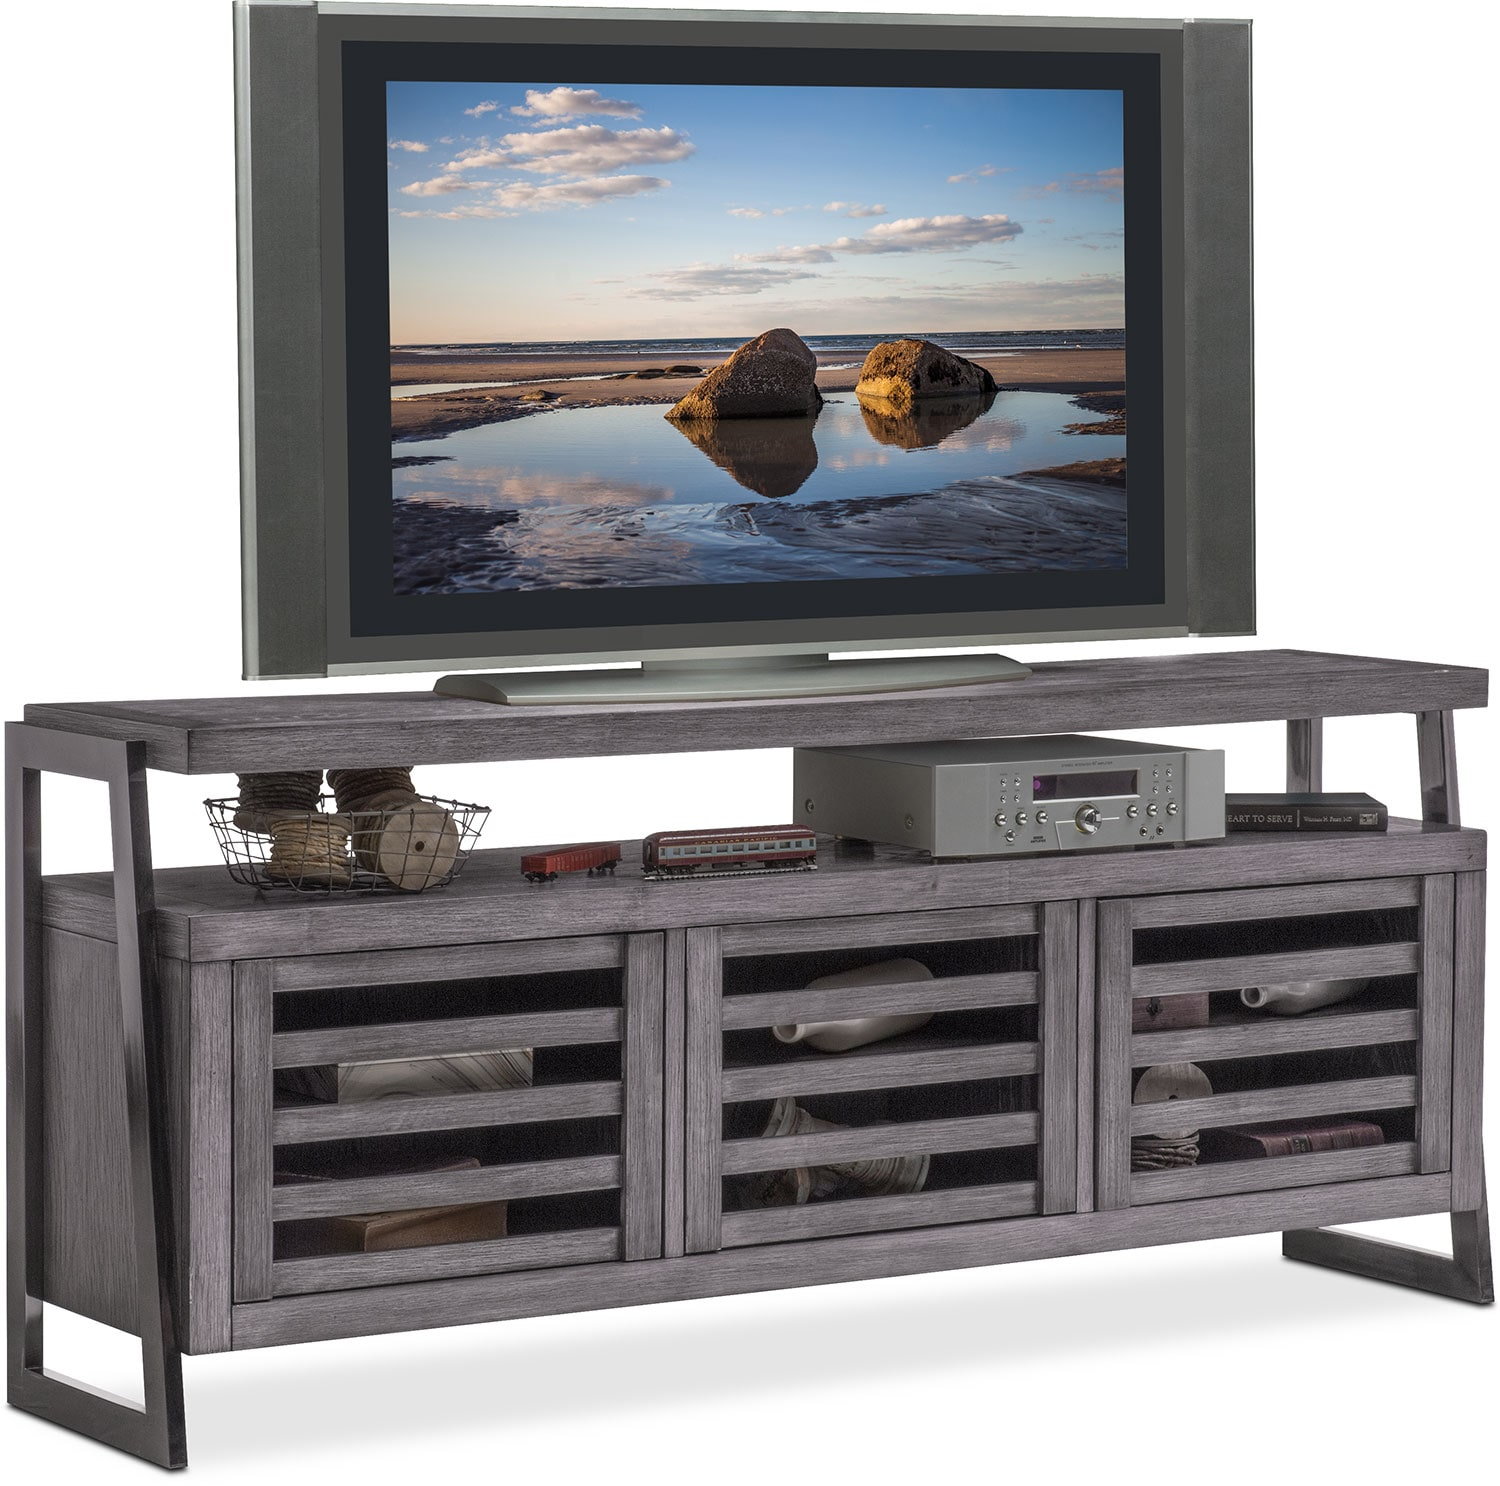 Donovan TV Stand Gray Value City Furniture - Tv stands